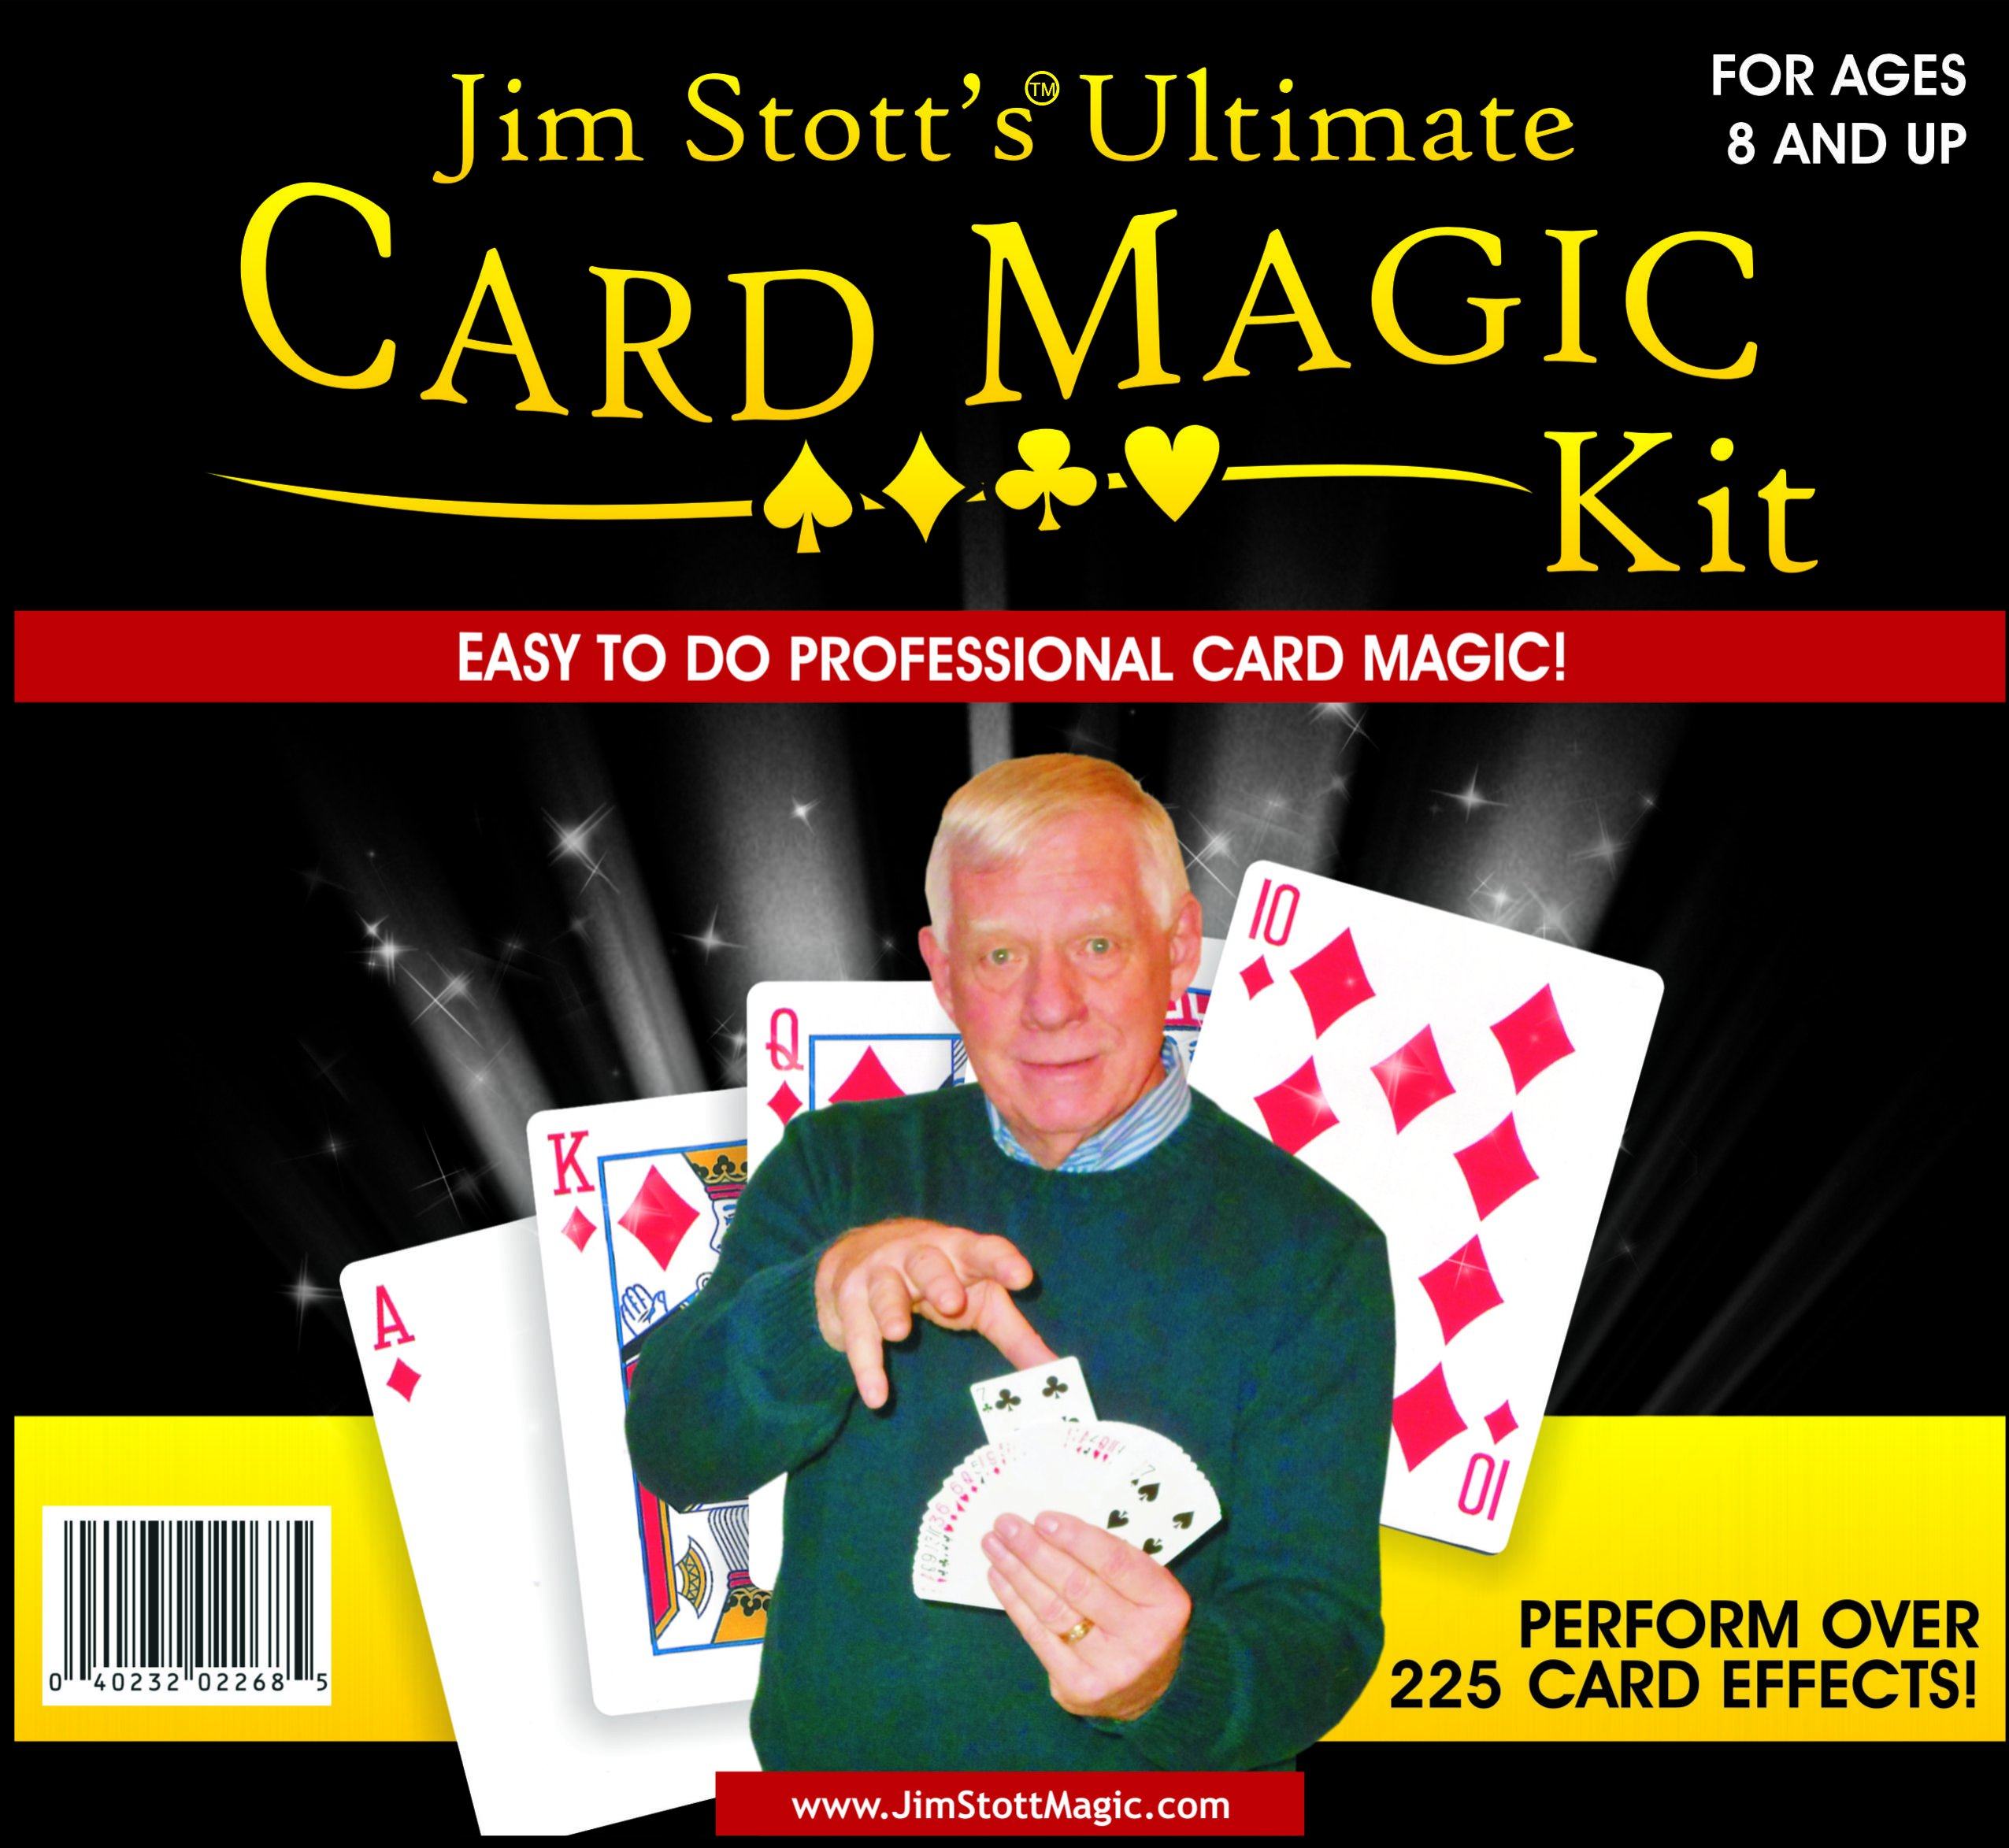 Jim Stott's 'Ultimate Card Magic Kit, Magic Tricks Set for Adults, Svengali Card Deck, Phantom Marked Deck, The Wizard Stripper Deck, Vanishing Card Case, The Magic Card Box, and More by Jim Stott Magic